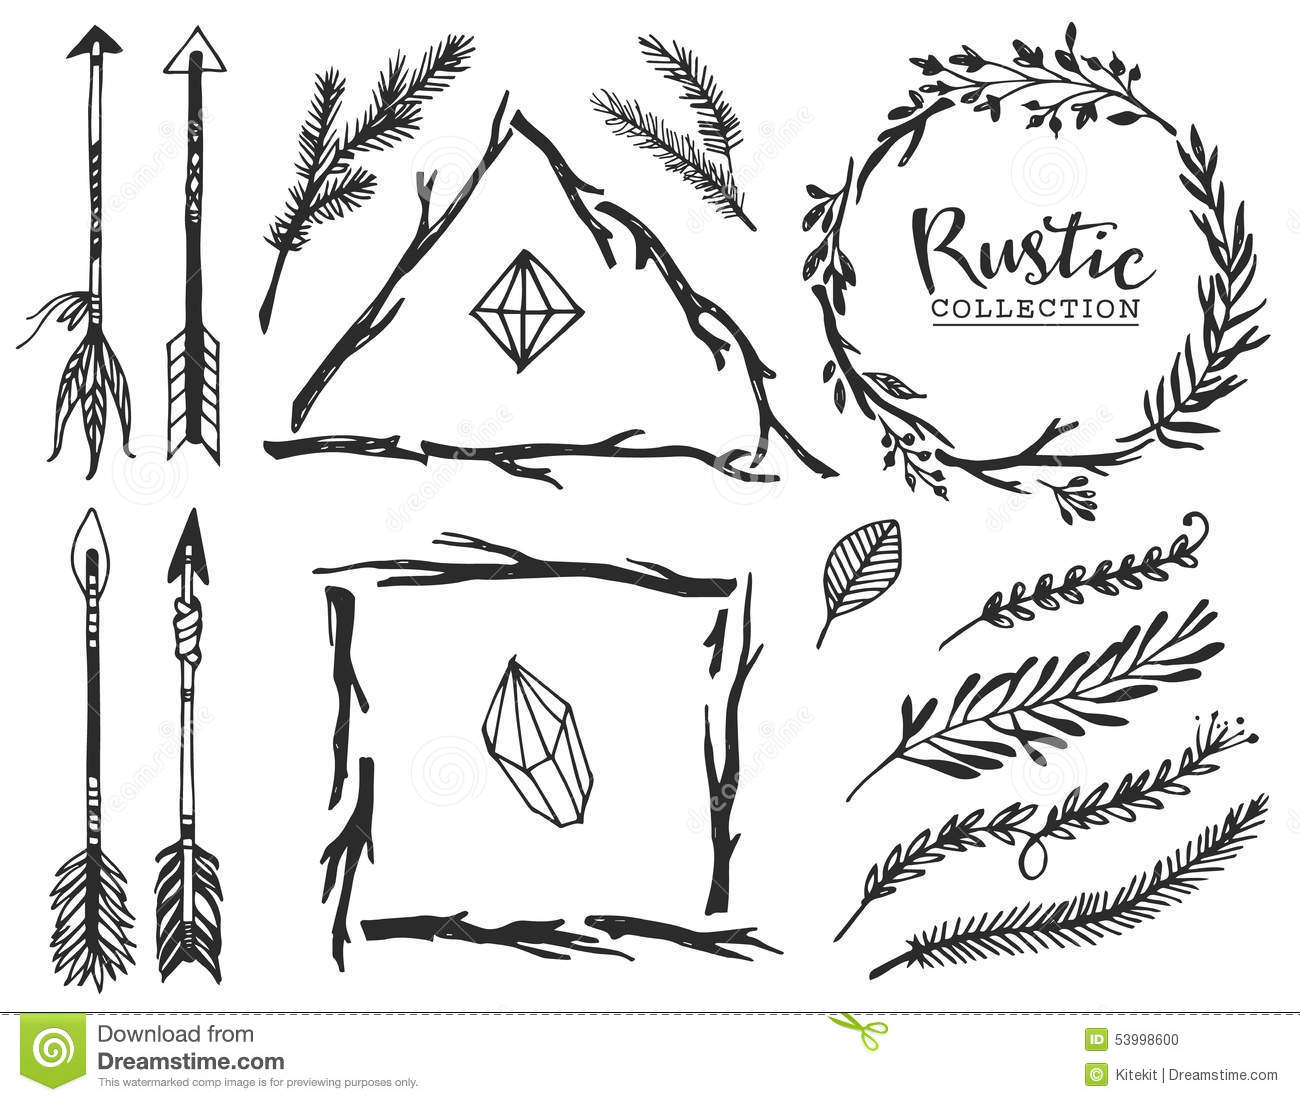 Rustic Decorative Elements With Arrow And Lettering